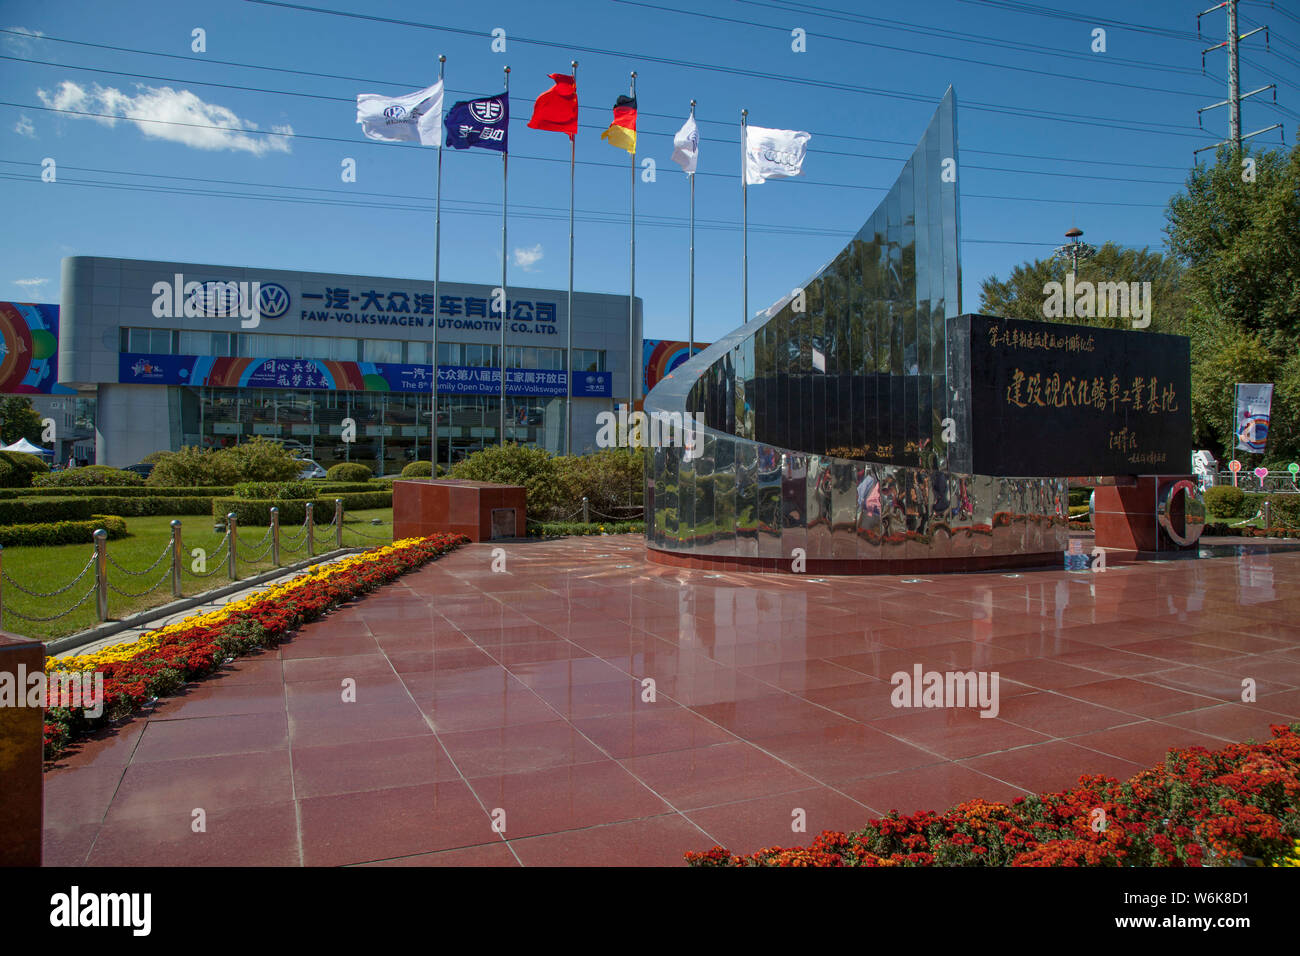 FILE--Flags of China, Germany and FAW-Volkswagen flutter in